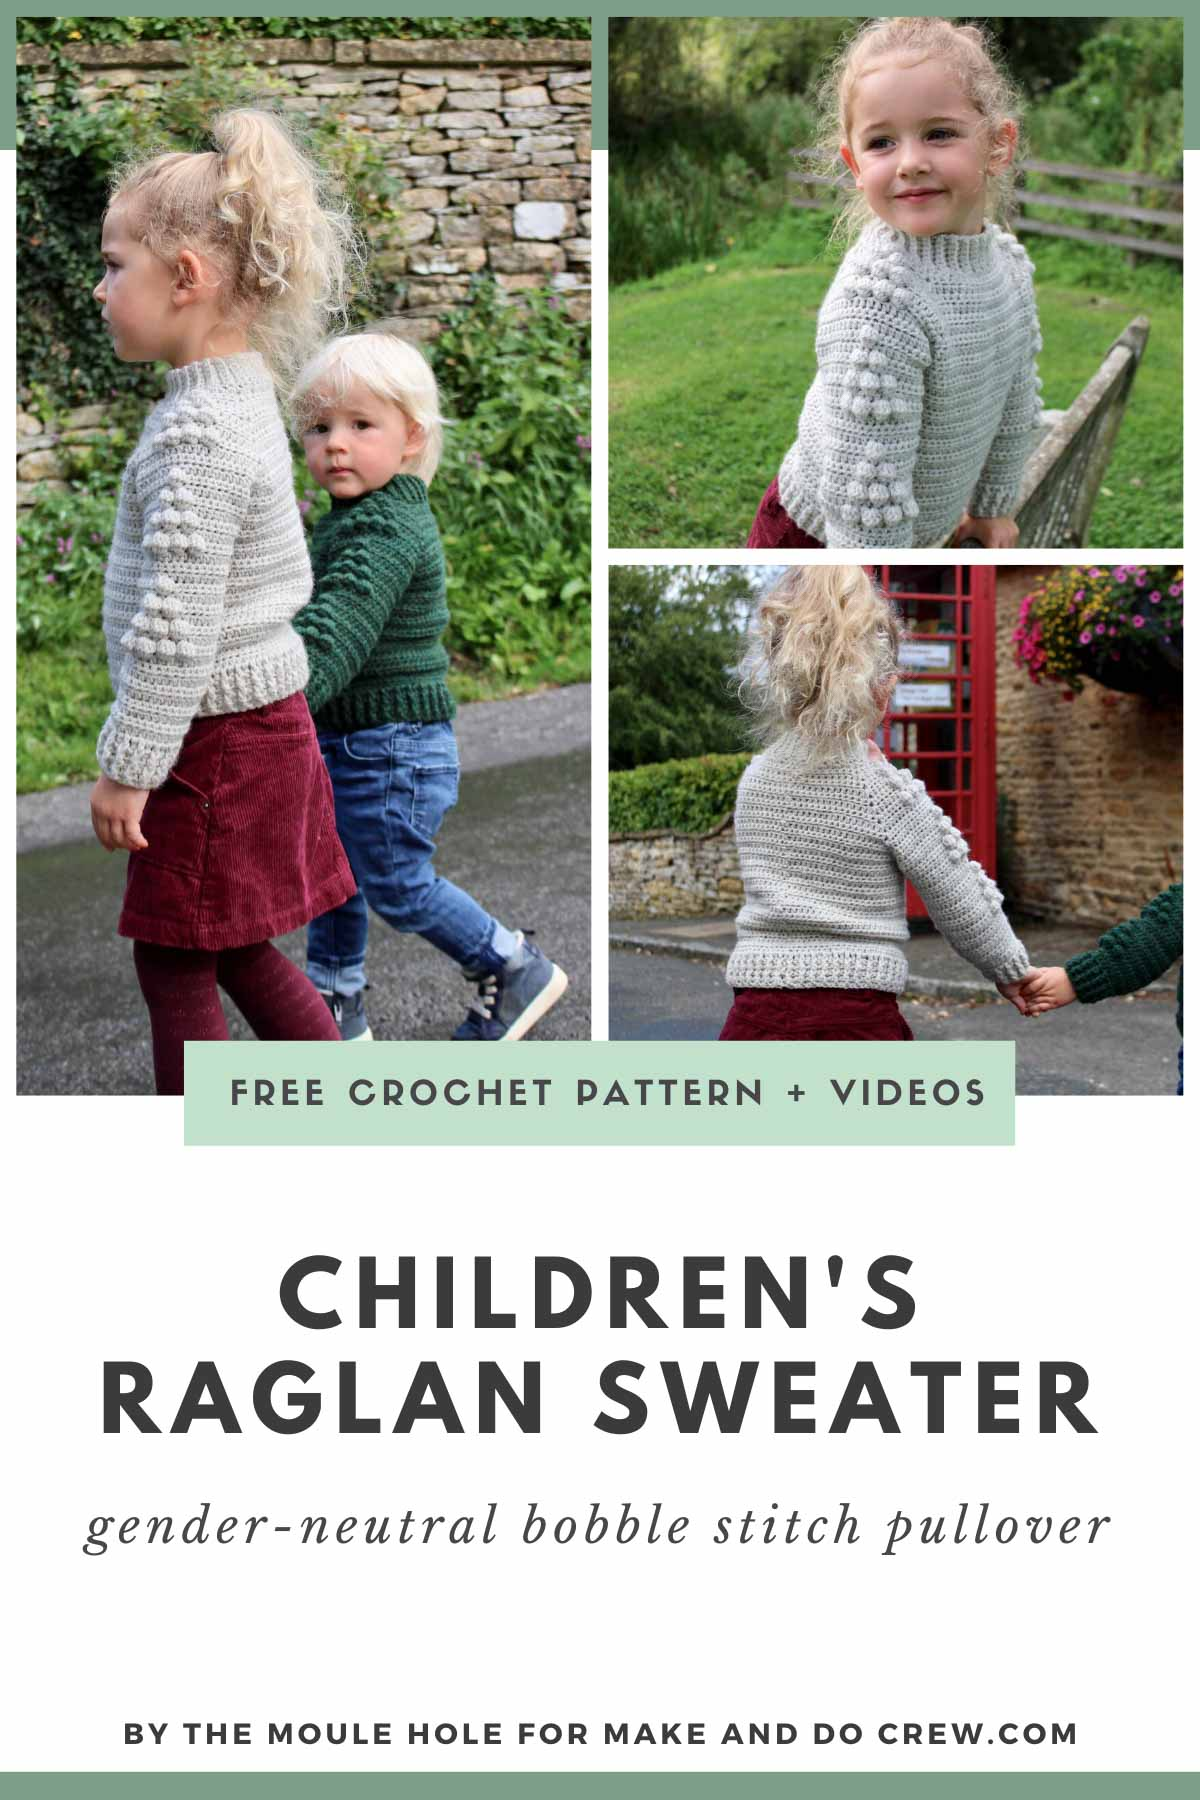 This raglan crochet sweater pattern for babies and kids is great for boys and girls alike. Make it for Christmas or general winter coziness! Free pattern featuring Lion Brand Wool-Ease.